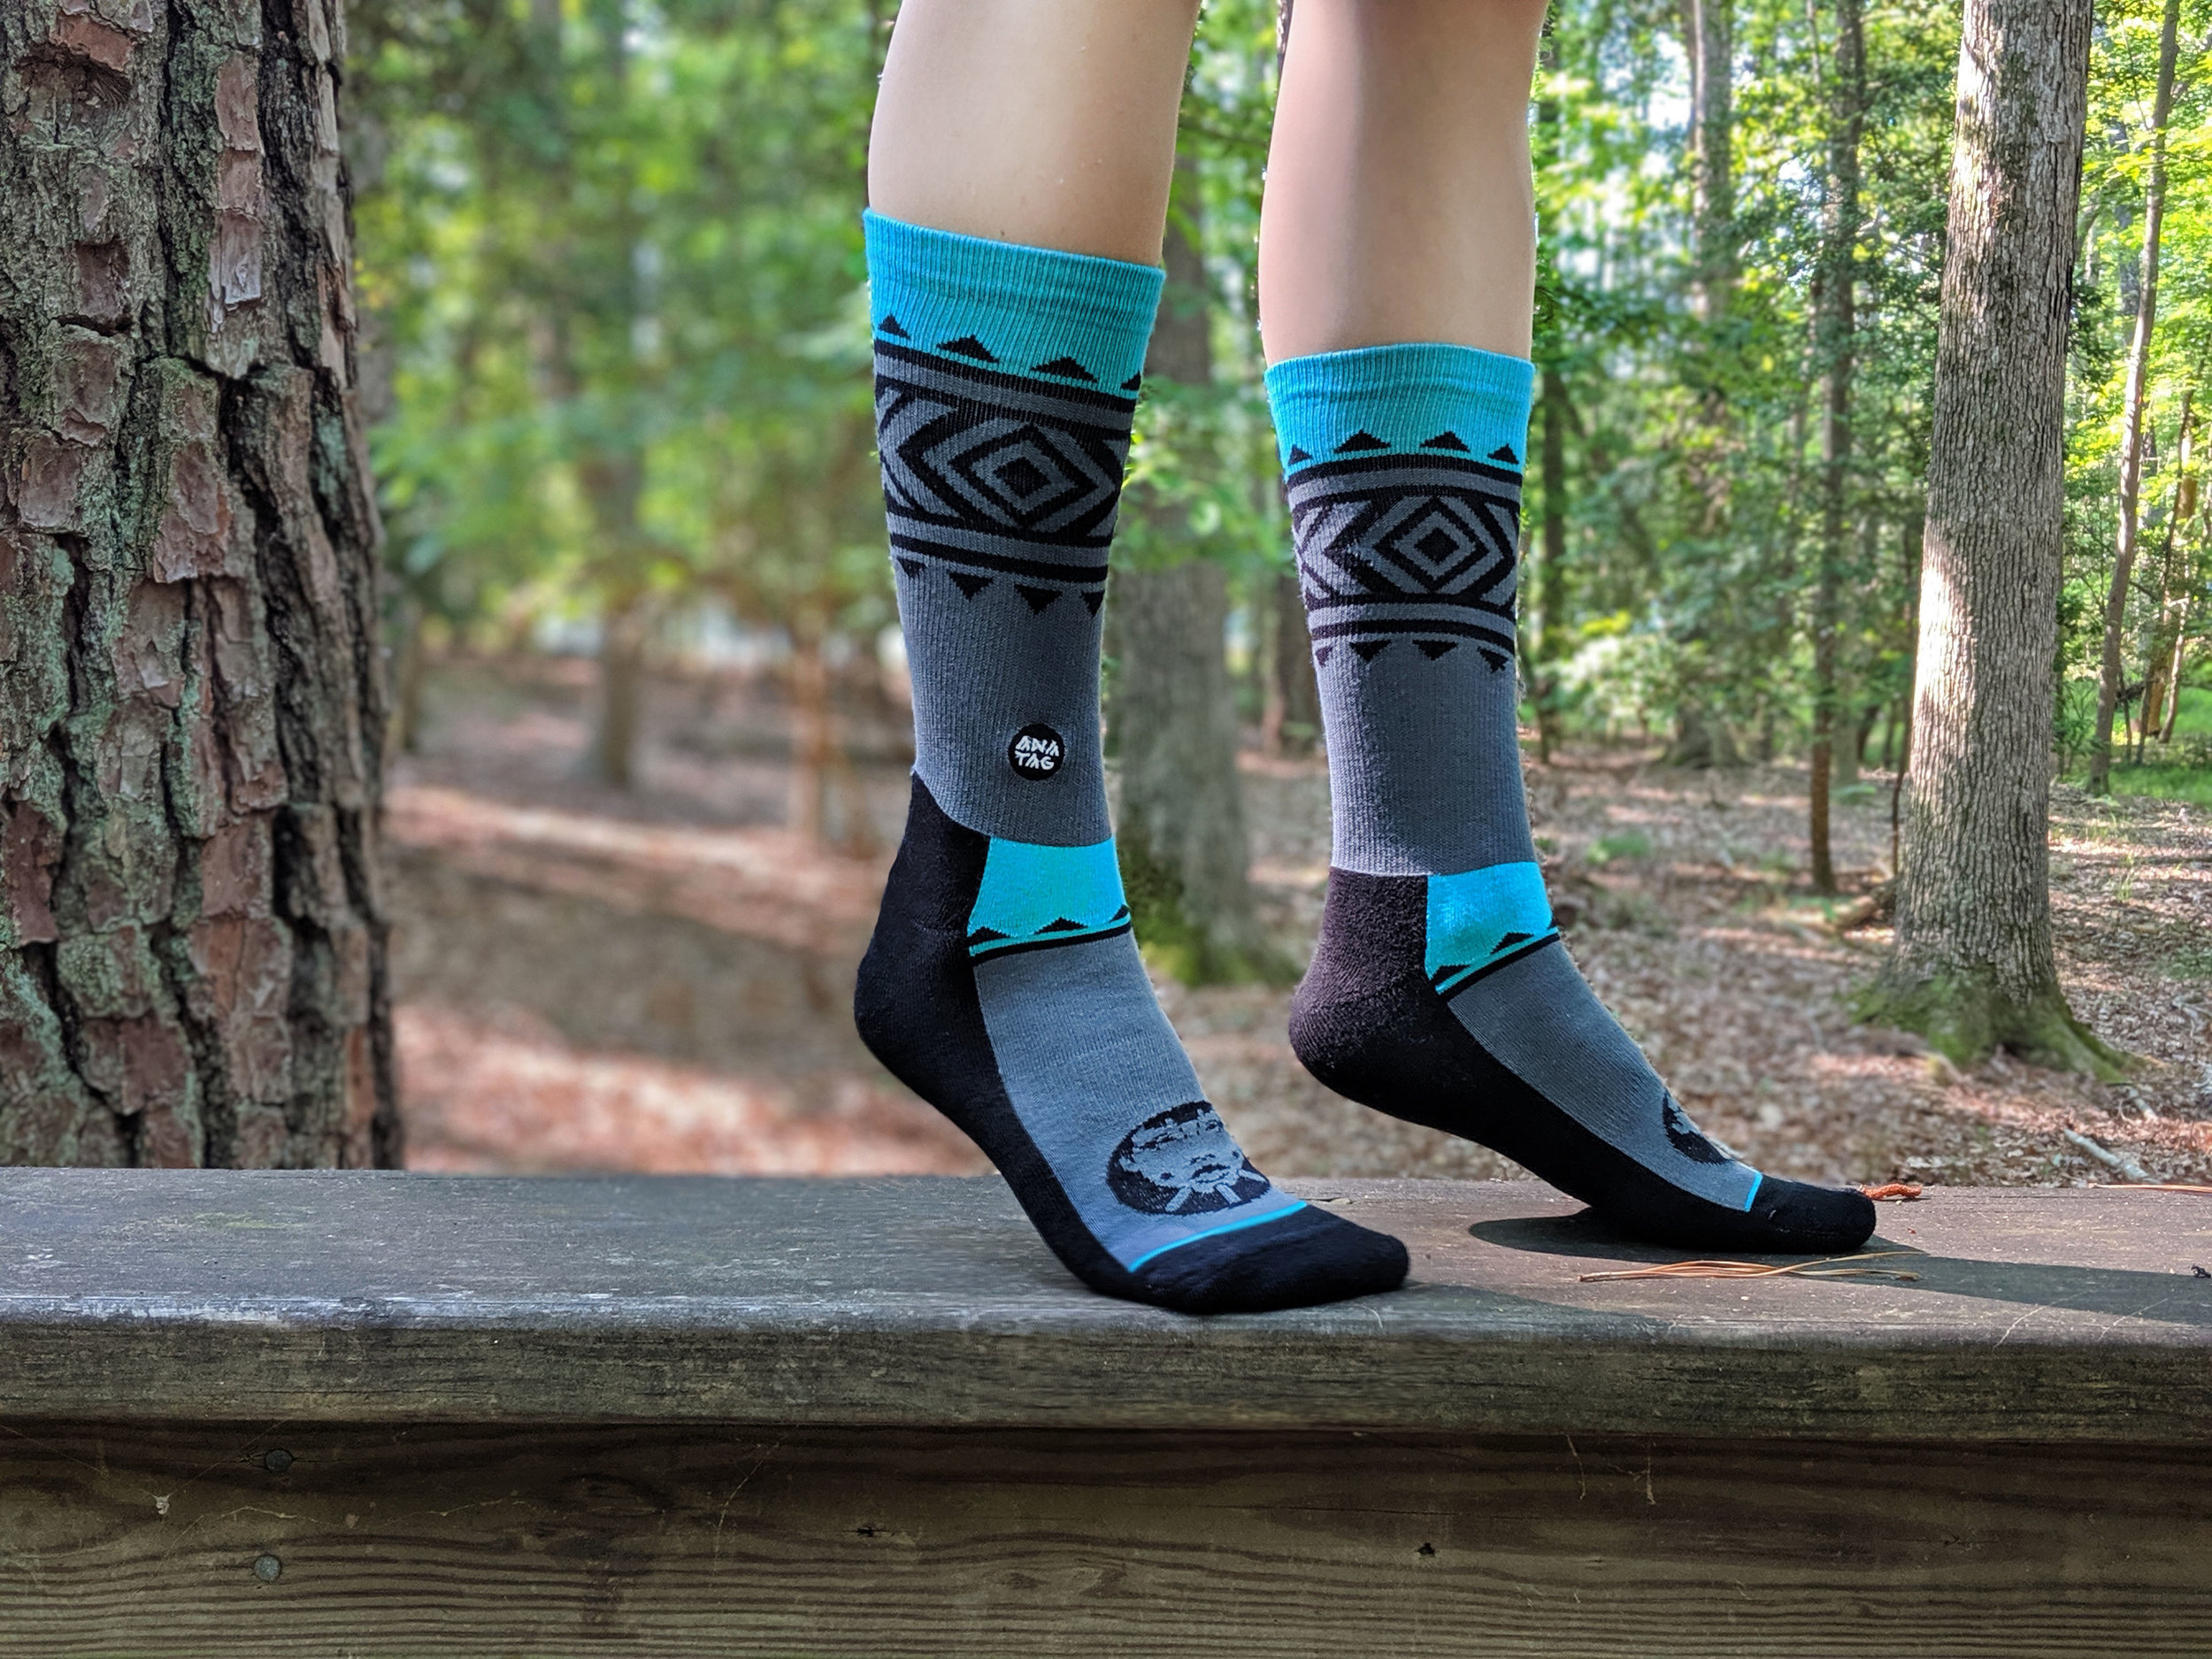 Untamed Rider from the New Beginnings Collection in Turquoise - Anatag socks make quite the natural statement!